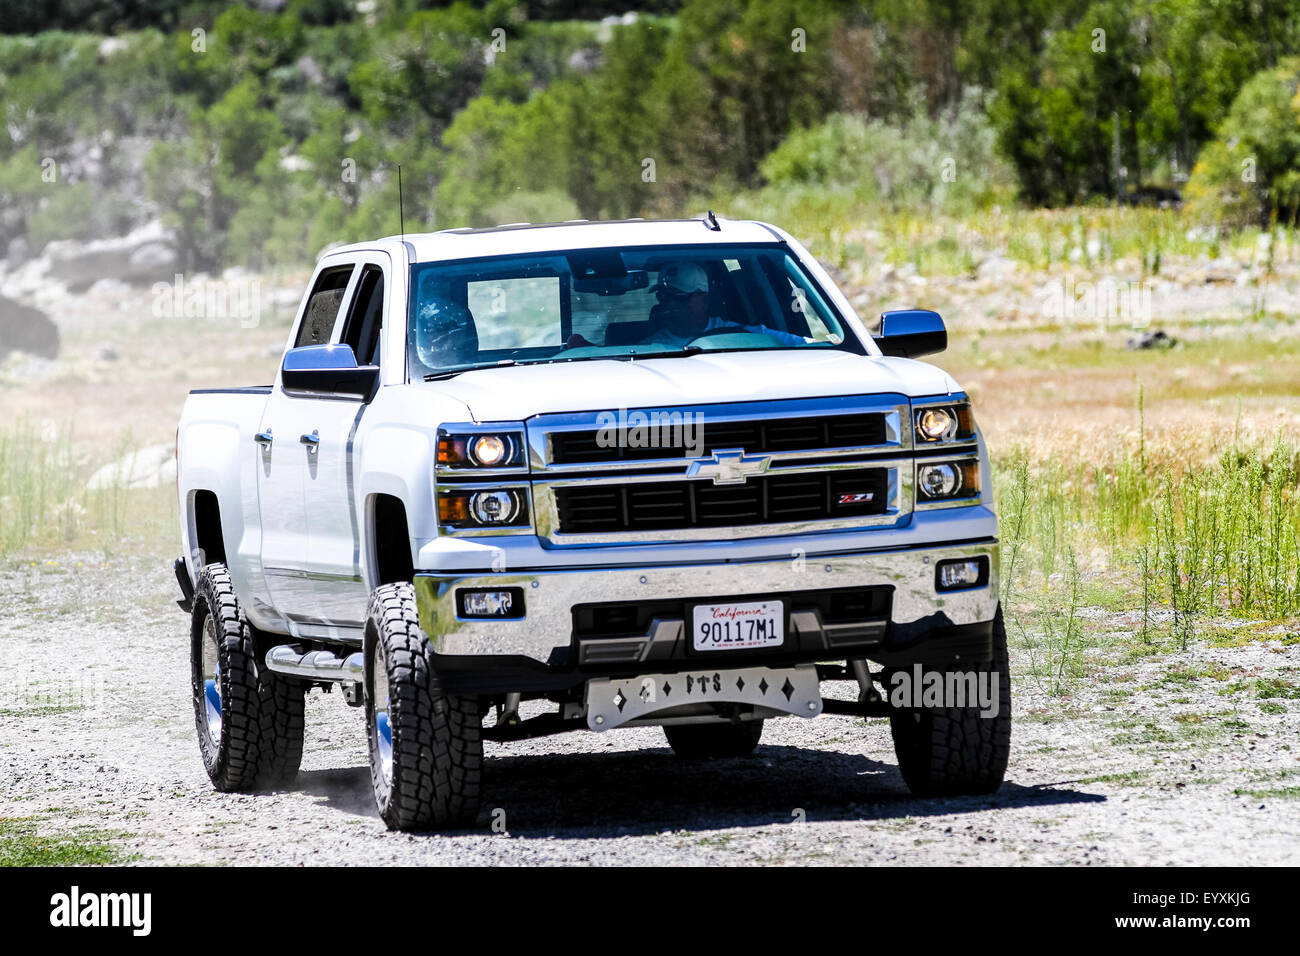 a 2014 chevy silverado z71 four wheel drive truck with. Black Bedroom Furniture Sets. Home Design Ideas